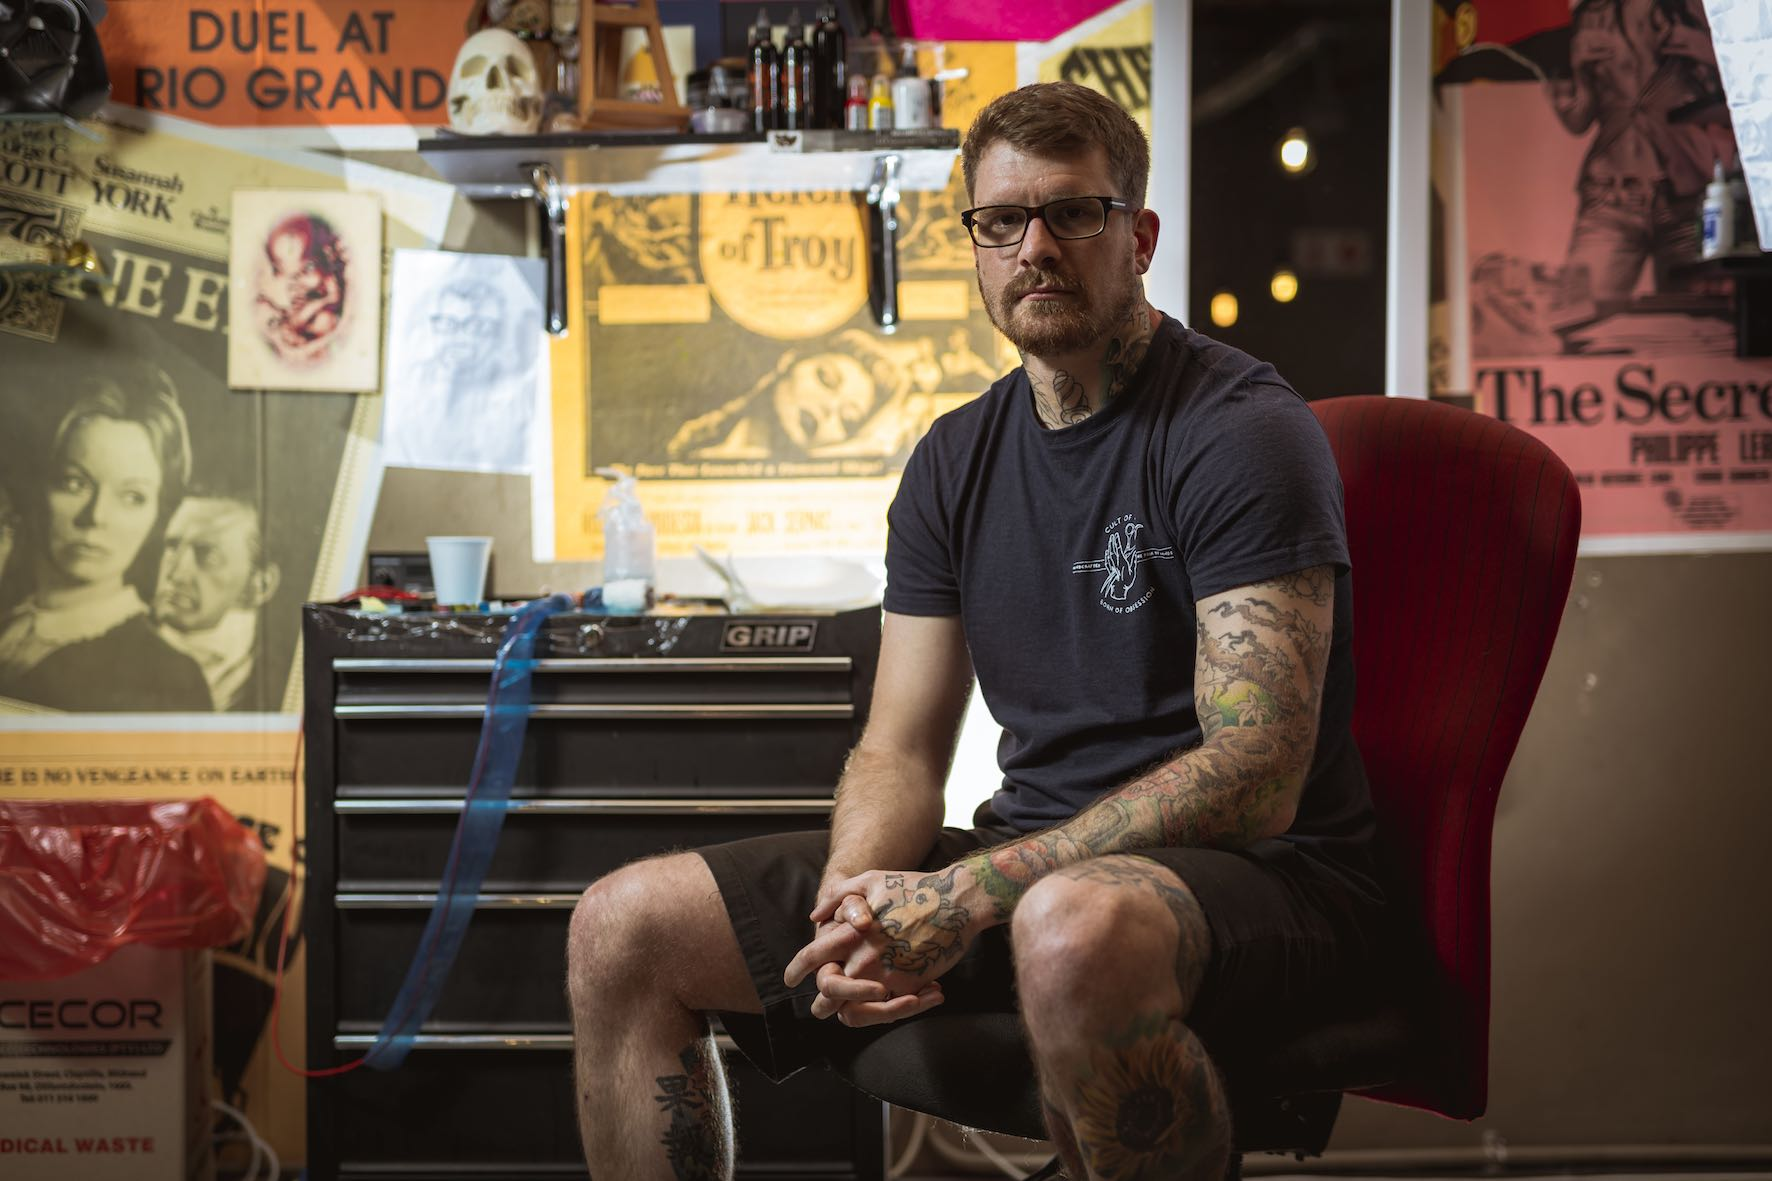 Meet Dean Clarke as our Tattoo Artist of the Week